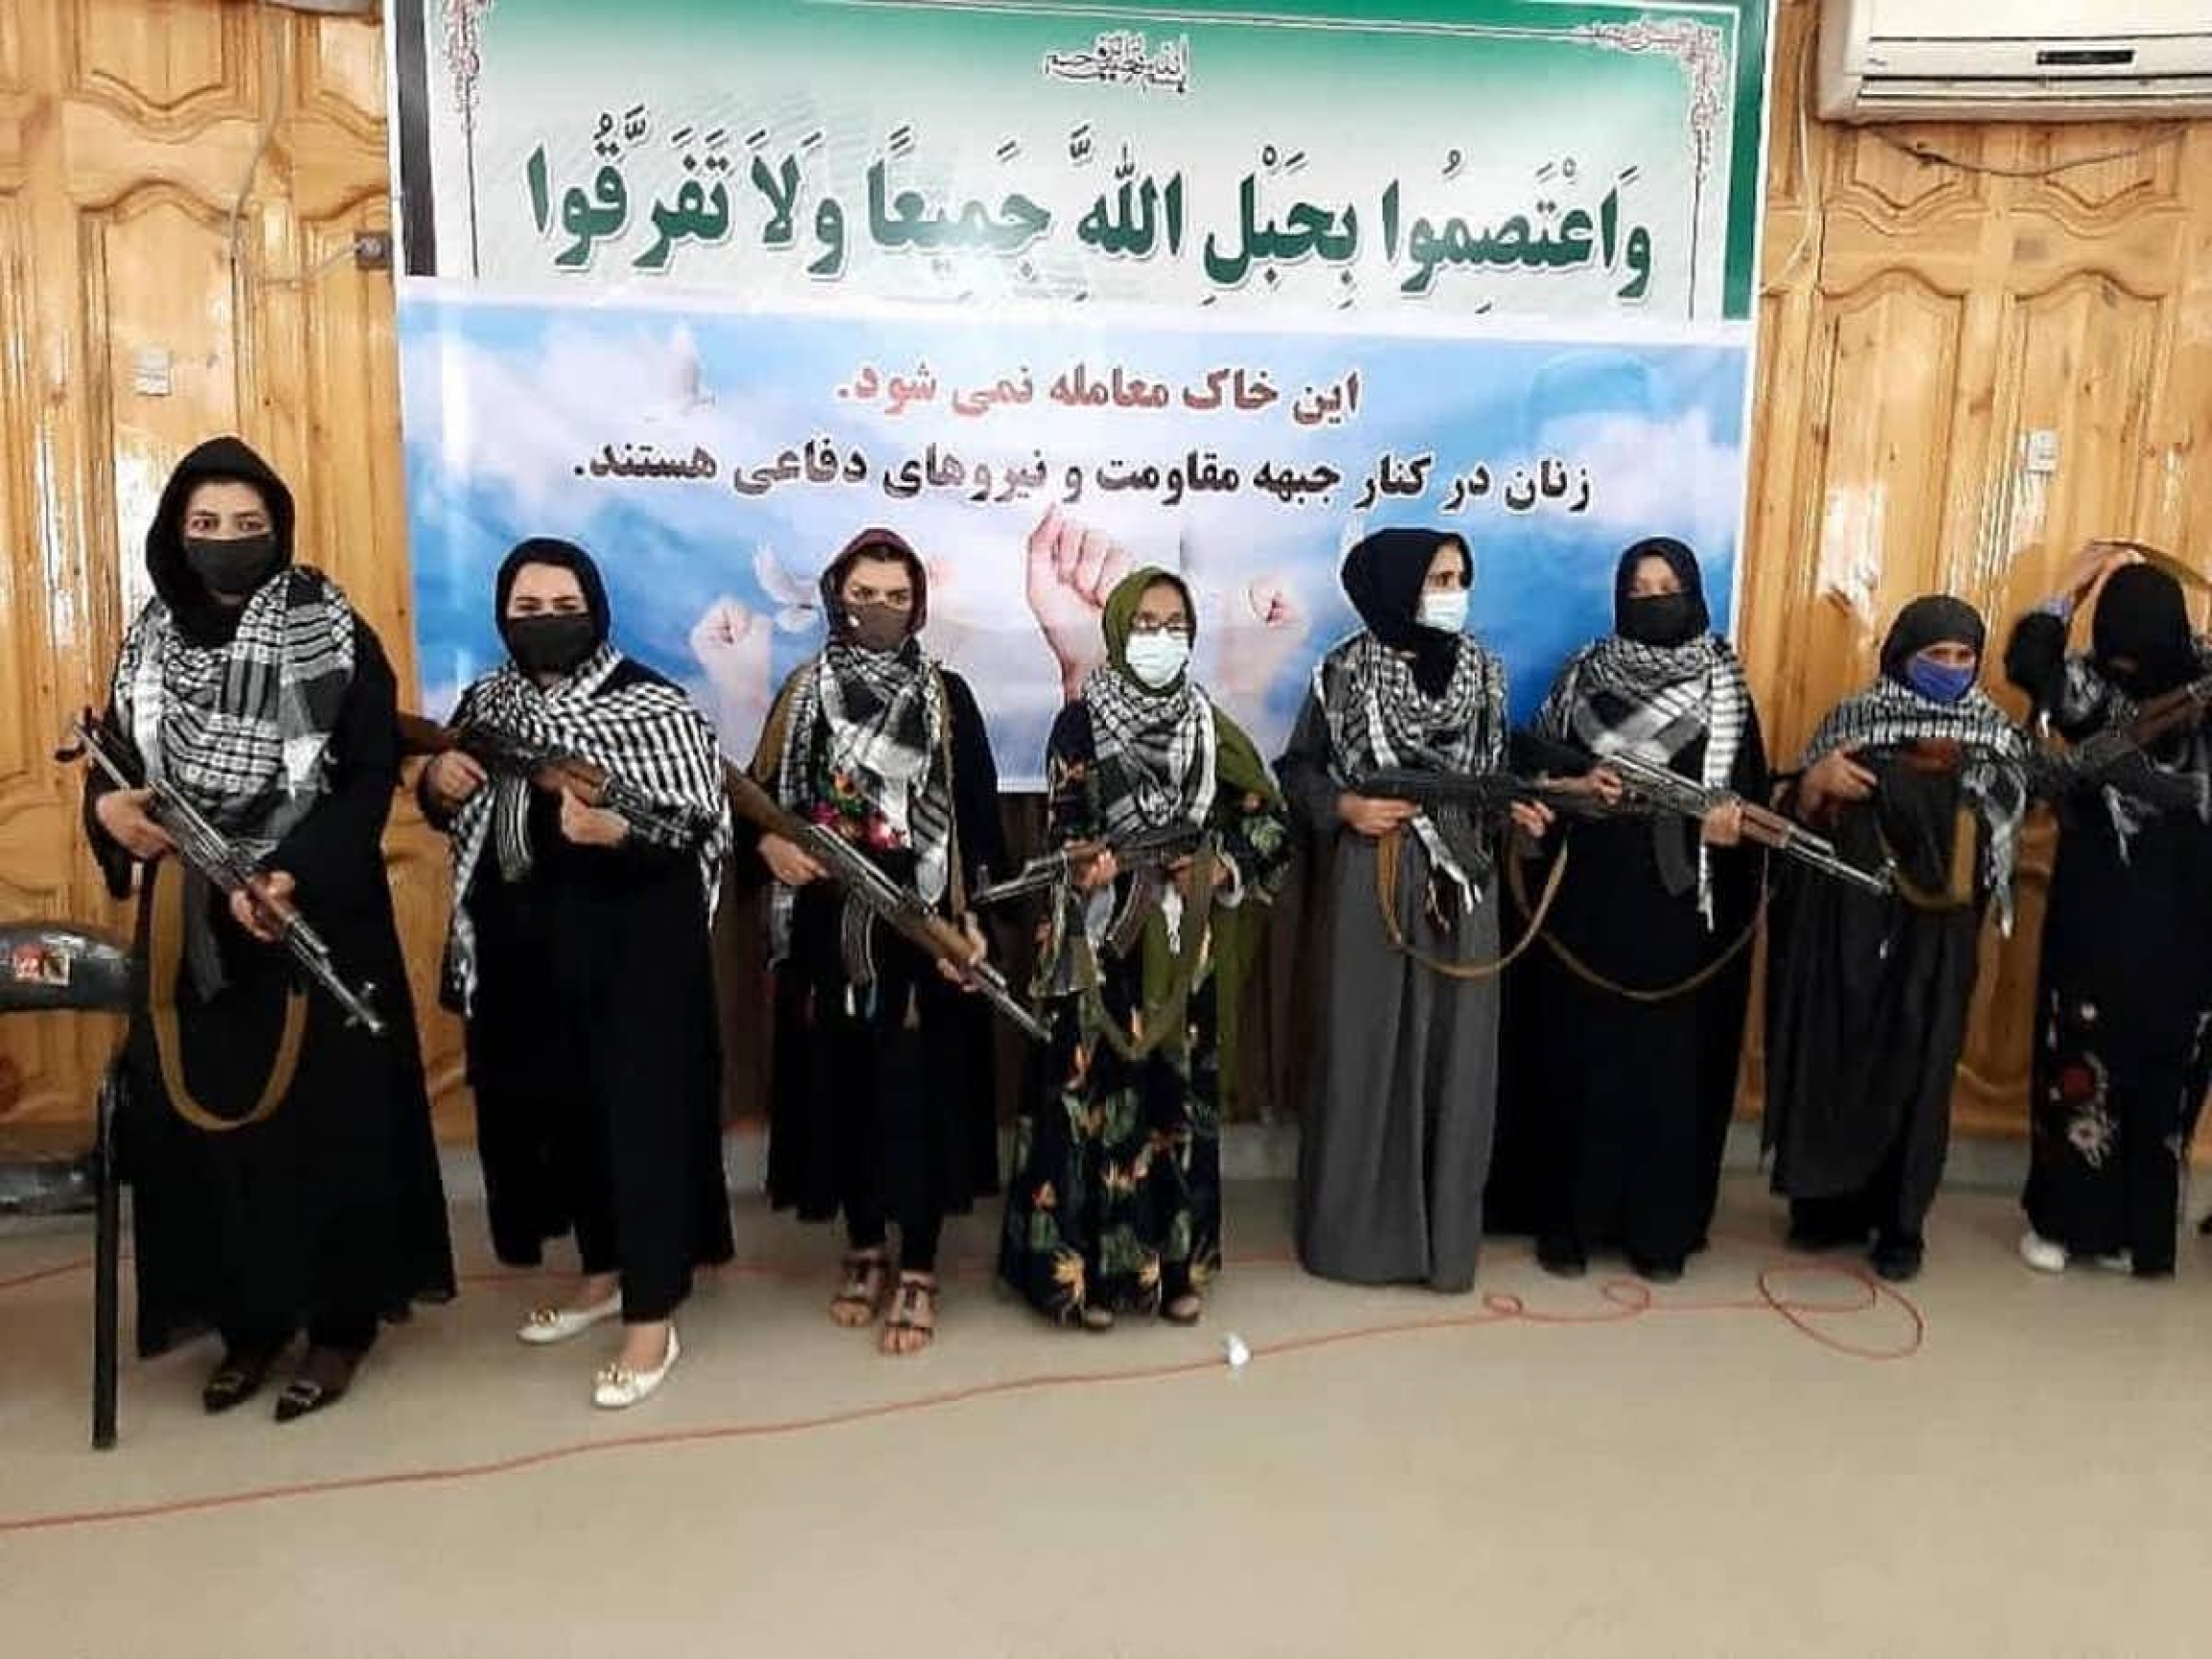 Radio Nowruz published this photo it said was of women in Herat who had taken up arms against the Taliban.